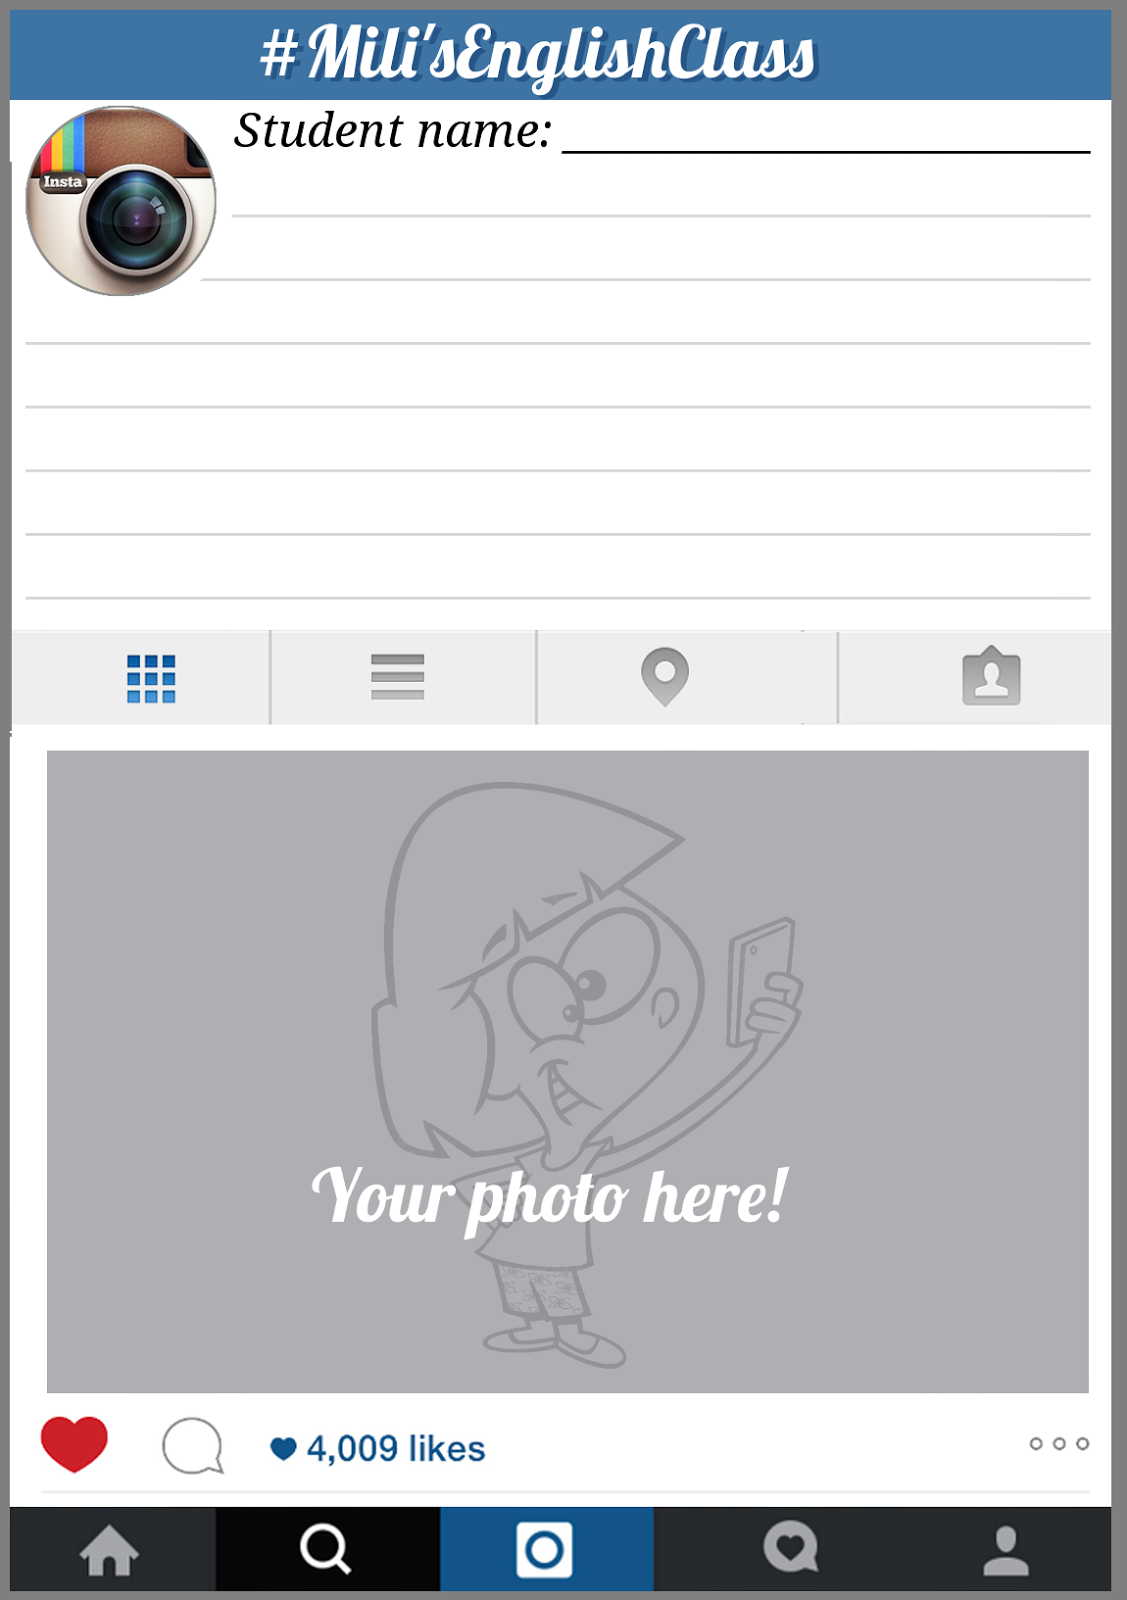 Instagram Page Layout Blank | www.imgkid.com - The Image ...